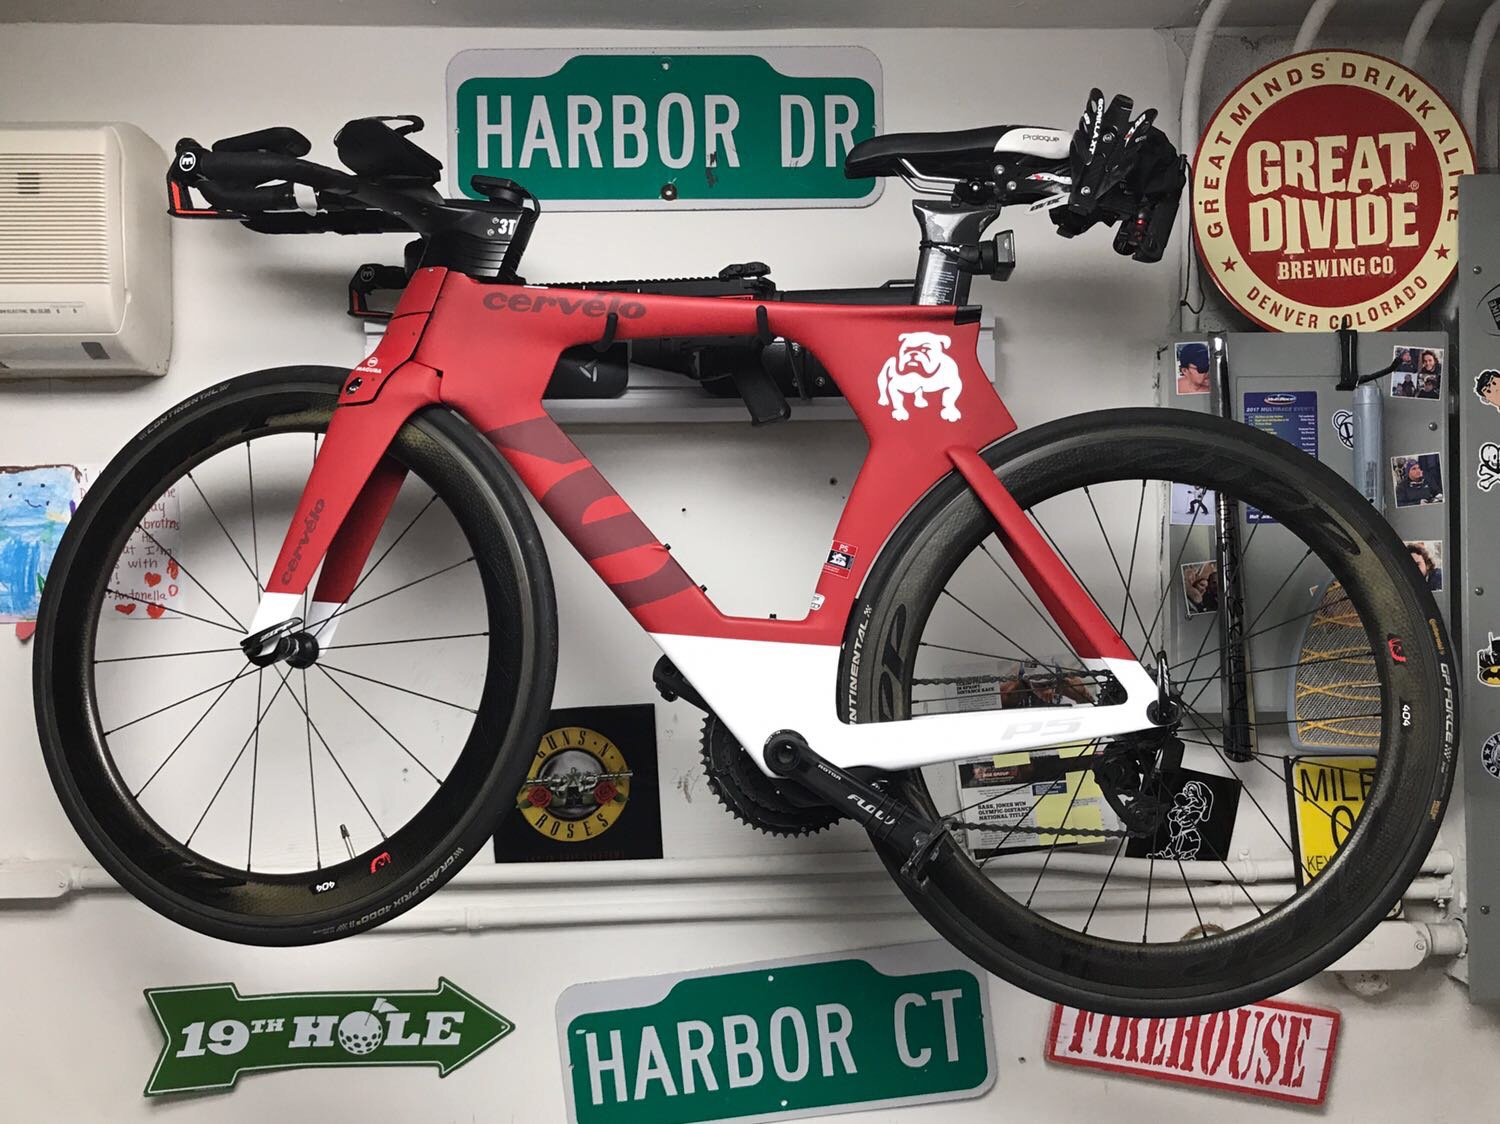 Cervelo P5 2016 with Sram Etap,  Look pedals, Garmin 1000, Zipp 404 Wheelset  $5000